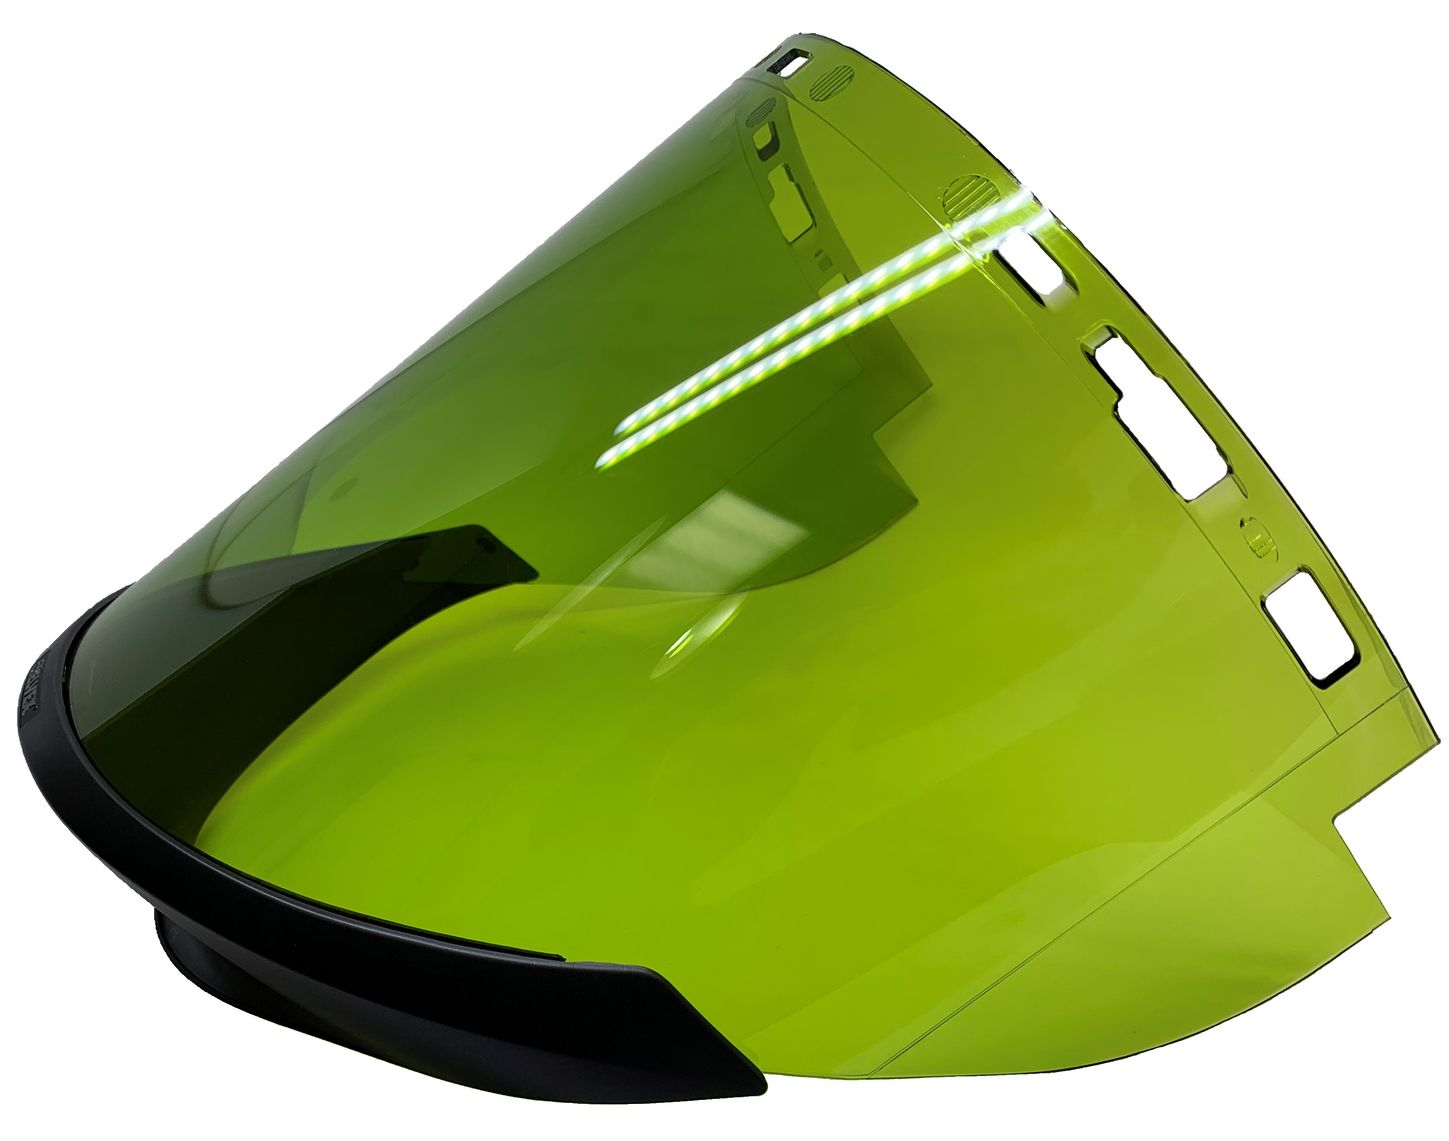 chicago-protective-apparel-replacement-visors-for-face-shields-wv-arc-12-green-left.jpg